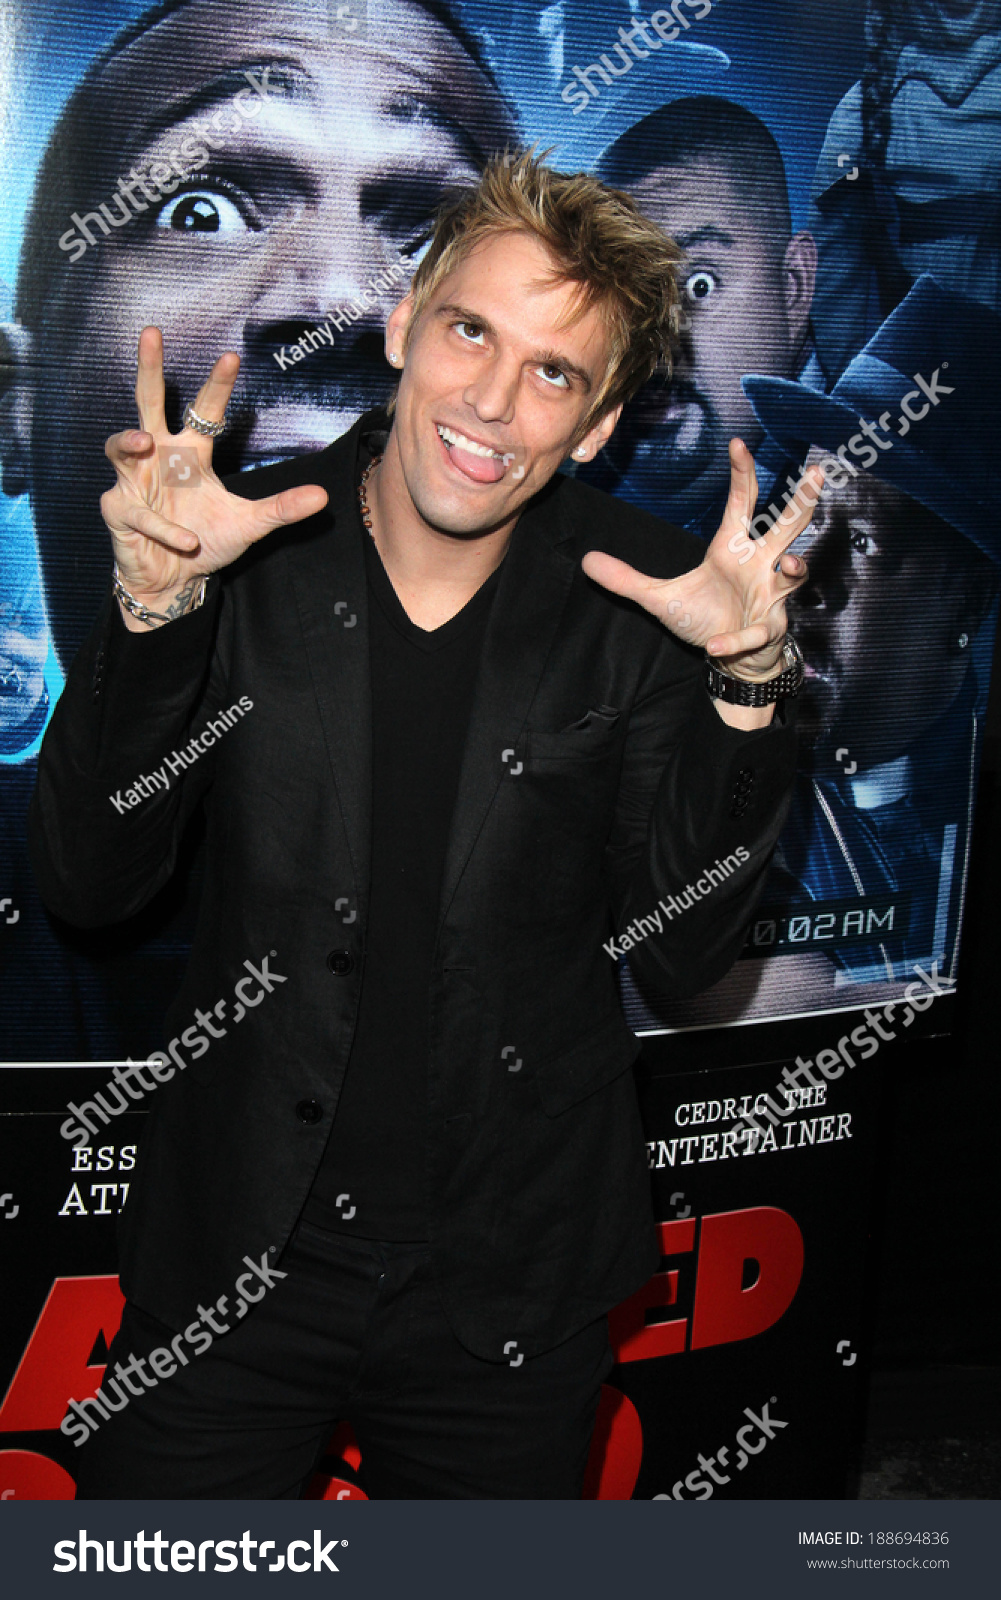 Opinion only Aaron carter house absolutely agree